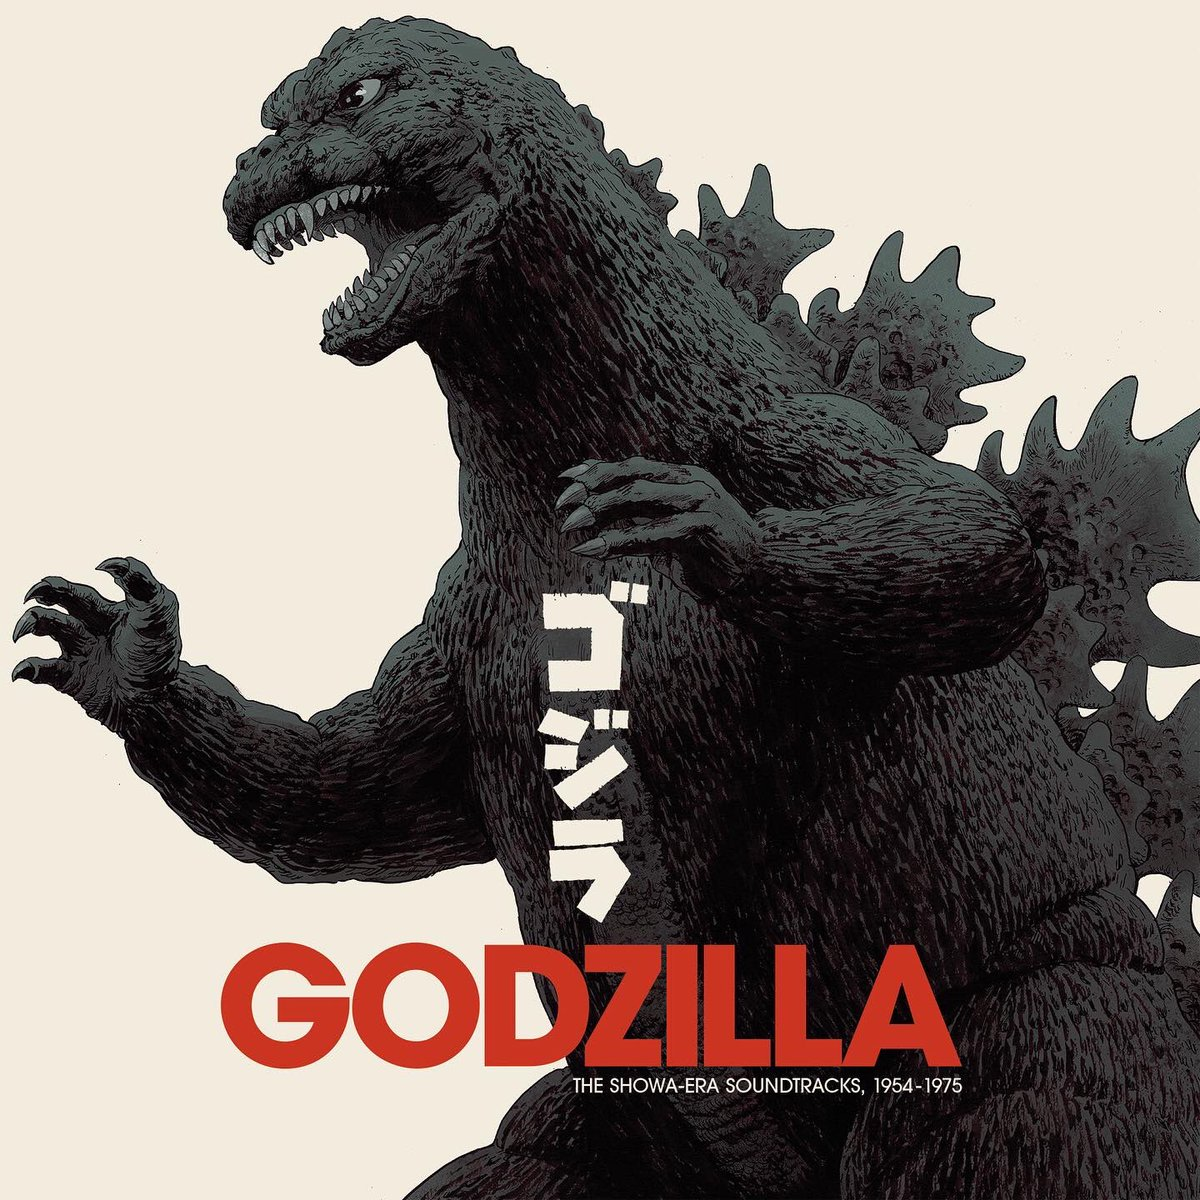 GODZILLA: The Showa Era Soundtracks, 1954-1975 18xLP Box Set is On Sale Now!